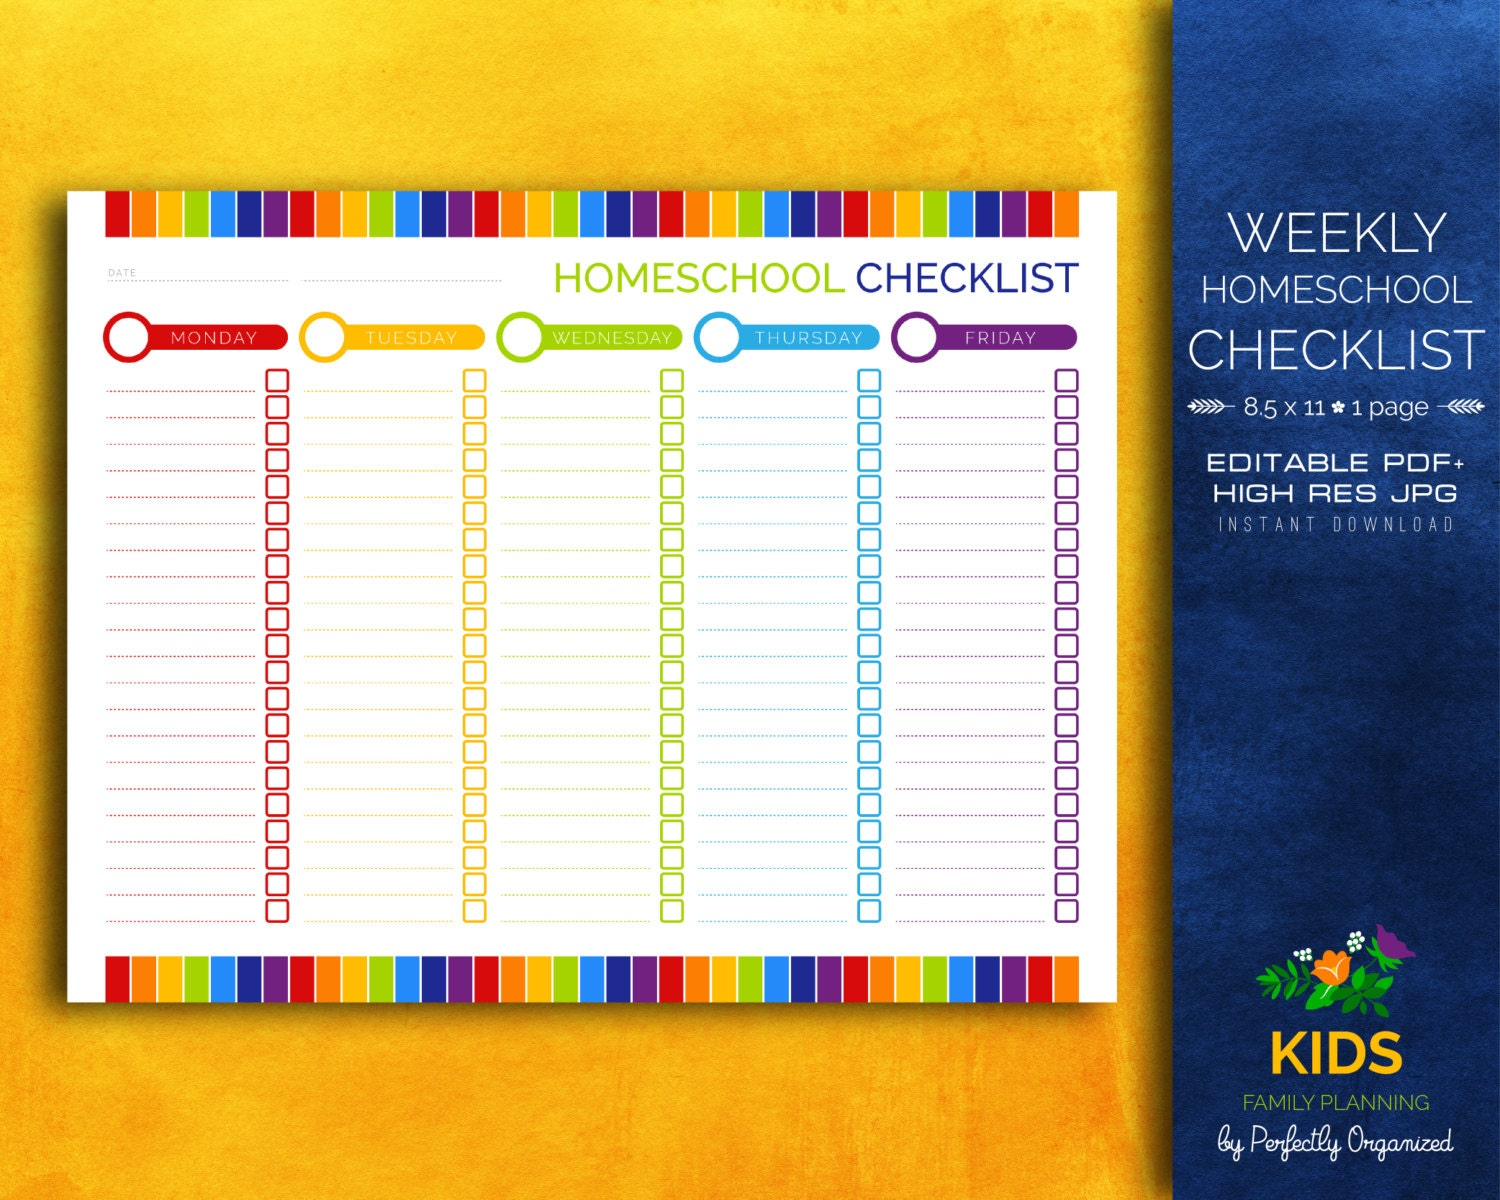 Weekly homeschool checklist homeschool lesson plan kids for Homeschool checklist template